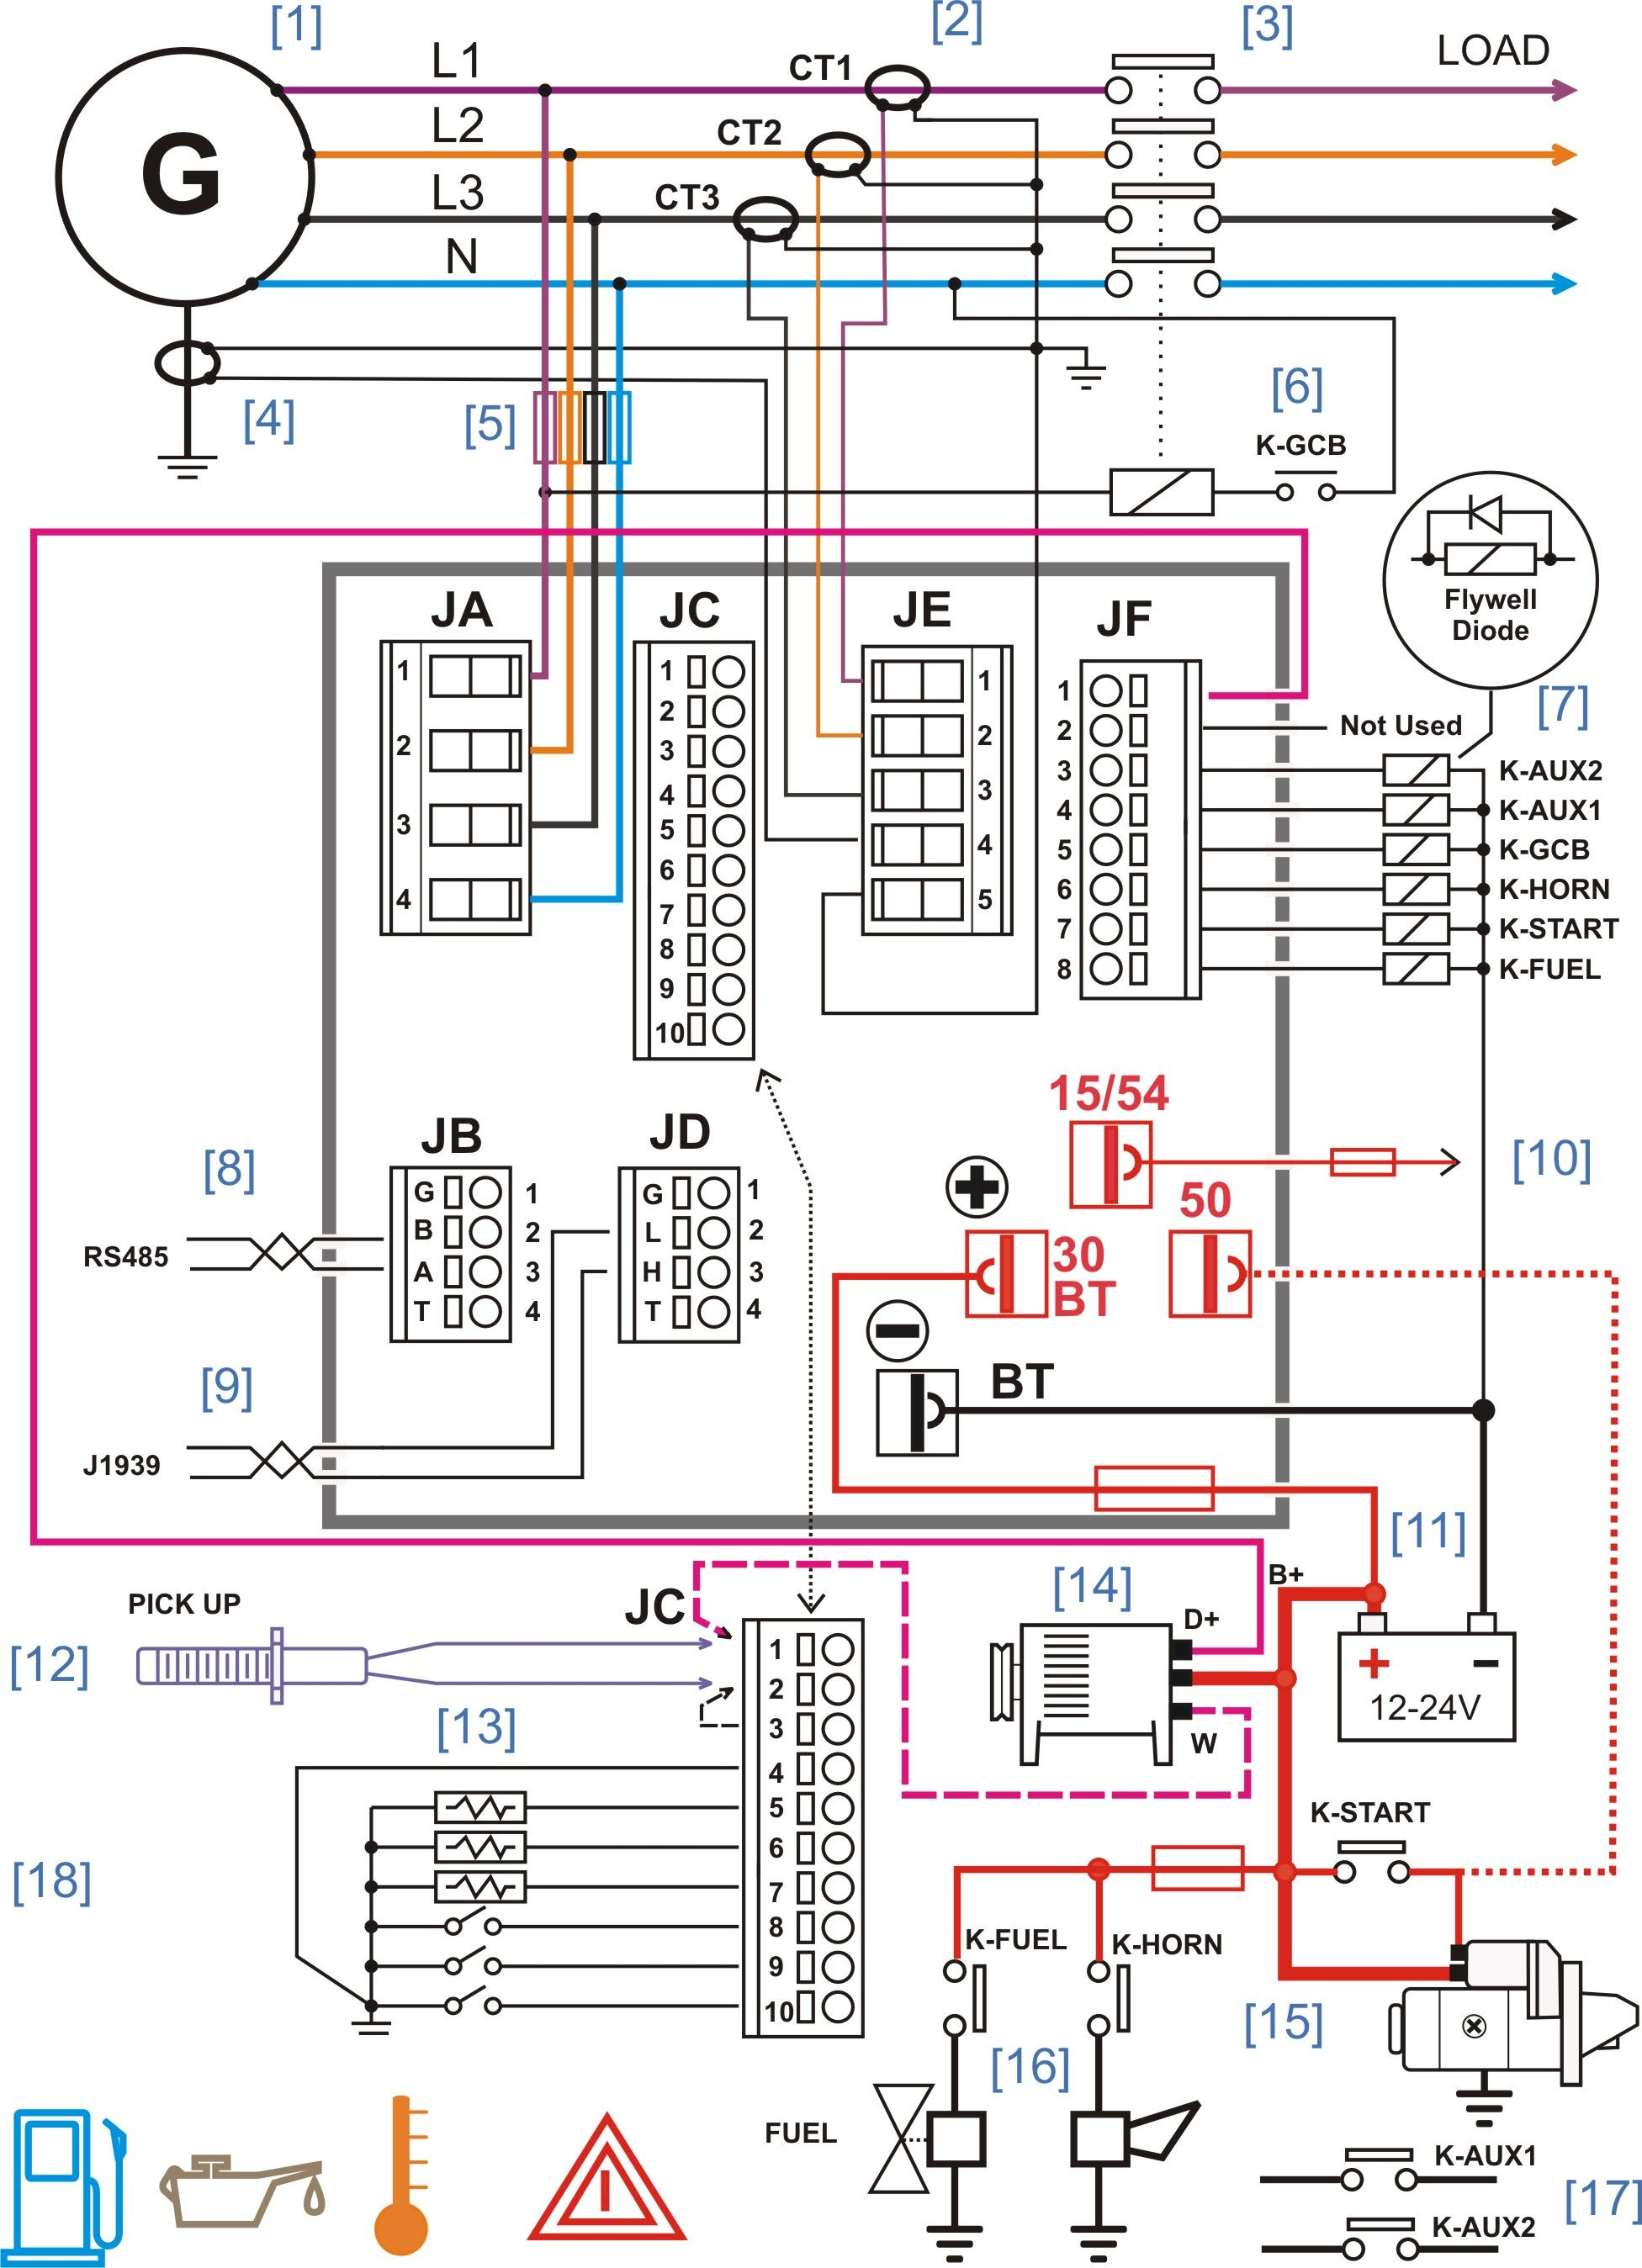 Diesel Generator Control Panel Wiring Diagram Electrical Circuit Diagram Electrical Diagram Electrical Wiring Diagram